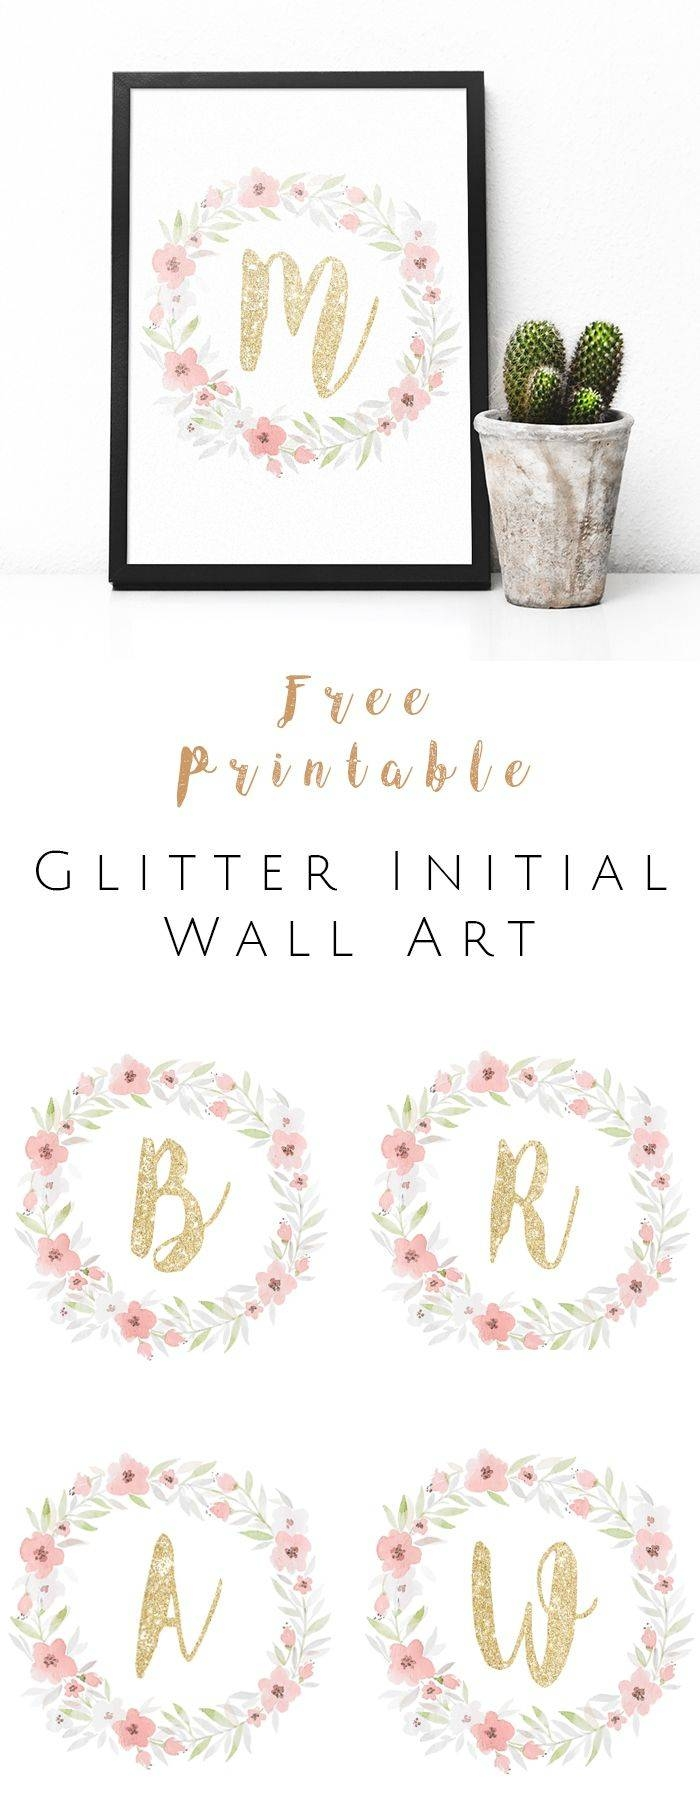 25+ Unique Monogram Wall Art Ideas On Pinterest | Monogram Wall For Most Recently Released Framed Monogram Wall Art (View 2 of 20)